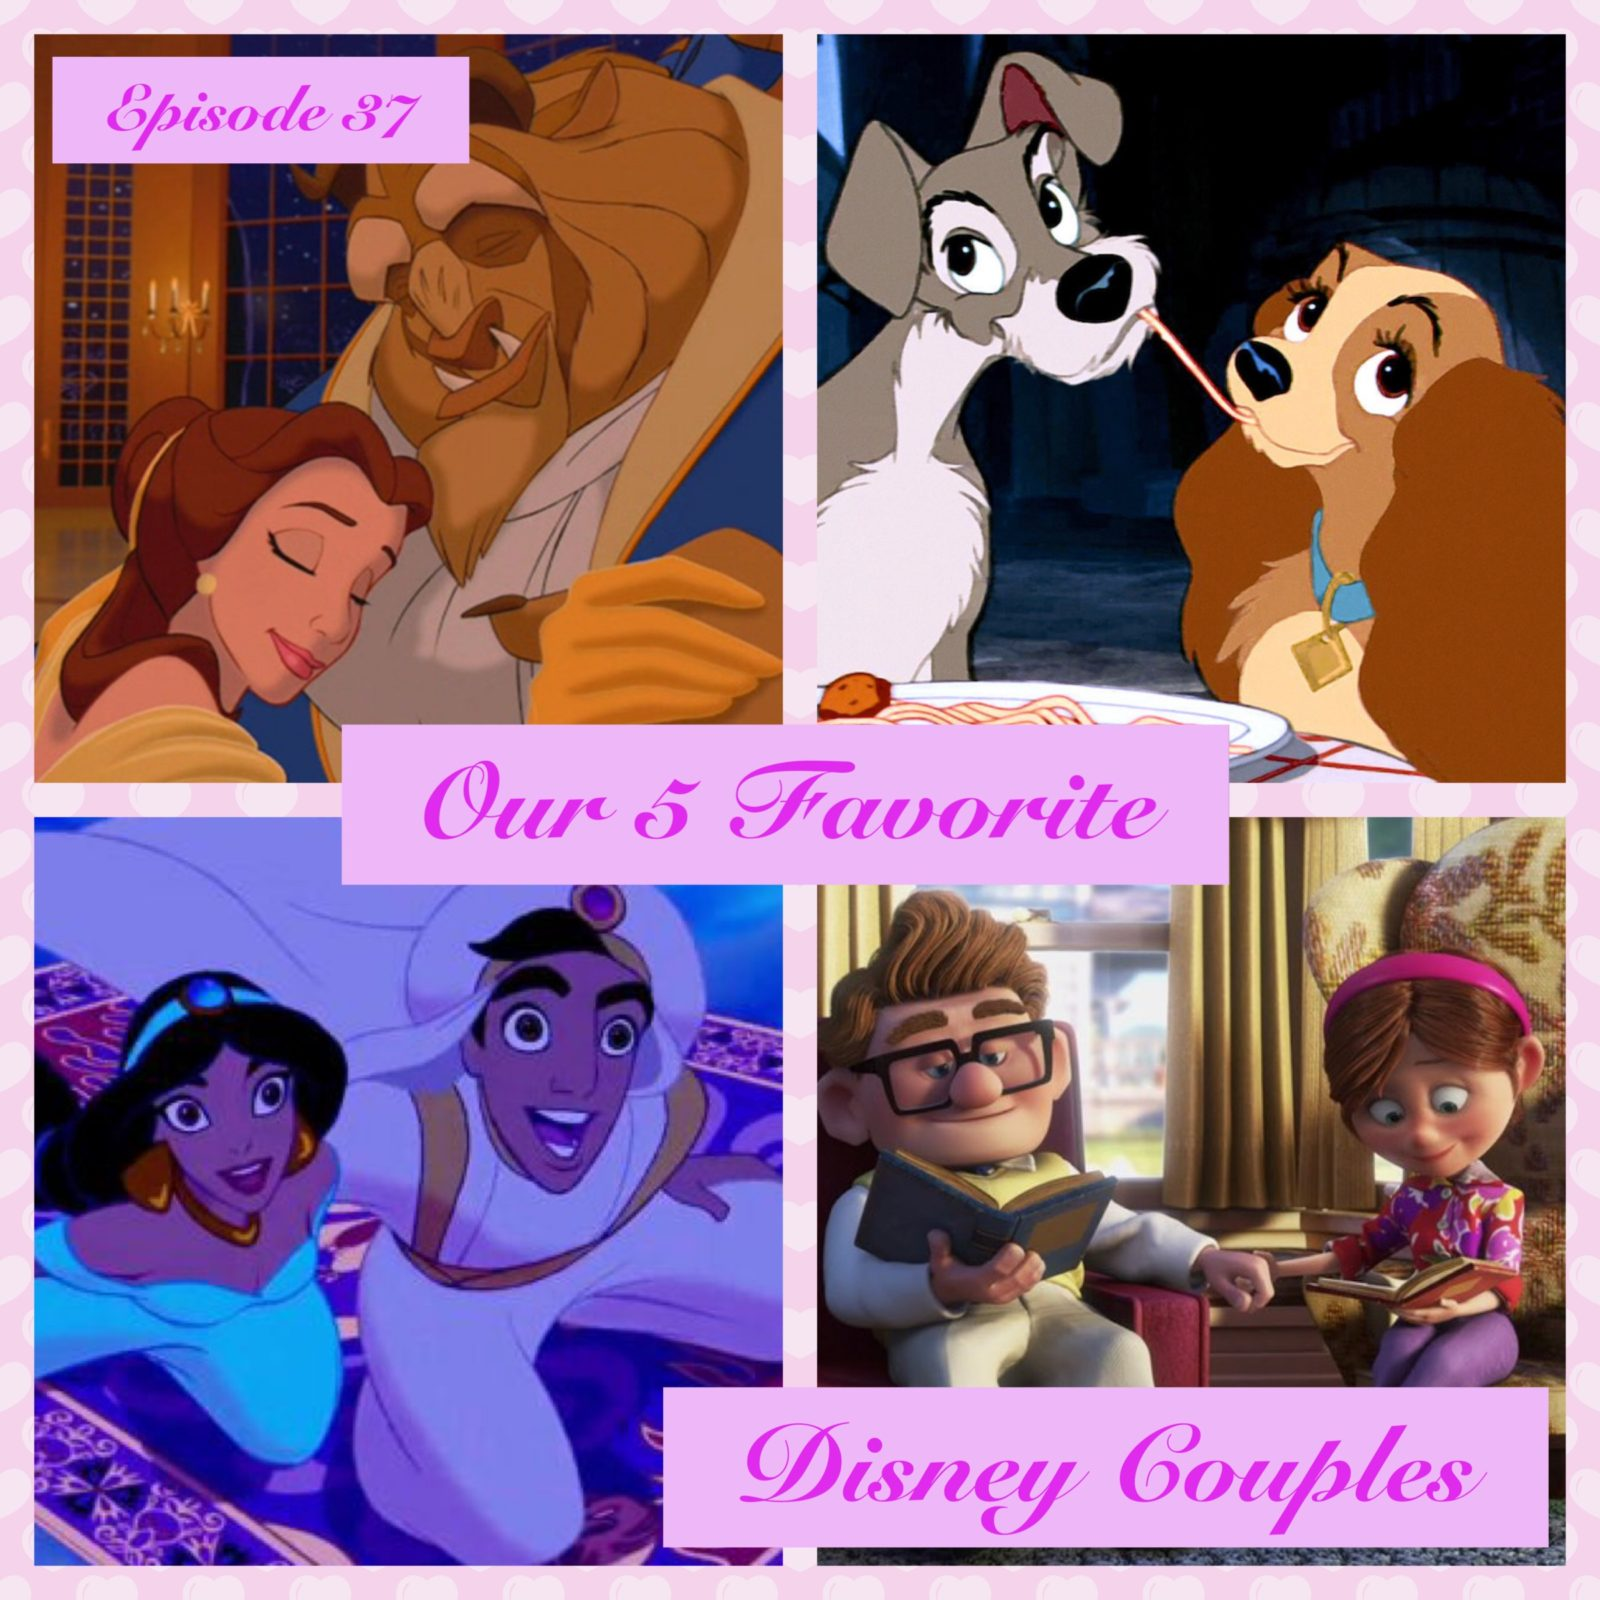 Our 5 Favorite Disney Couples